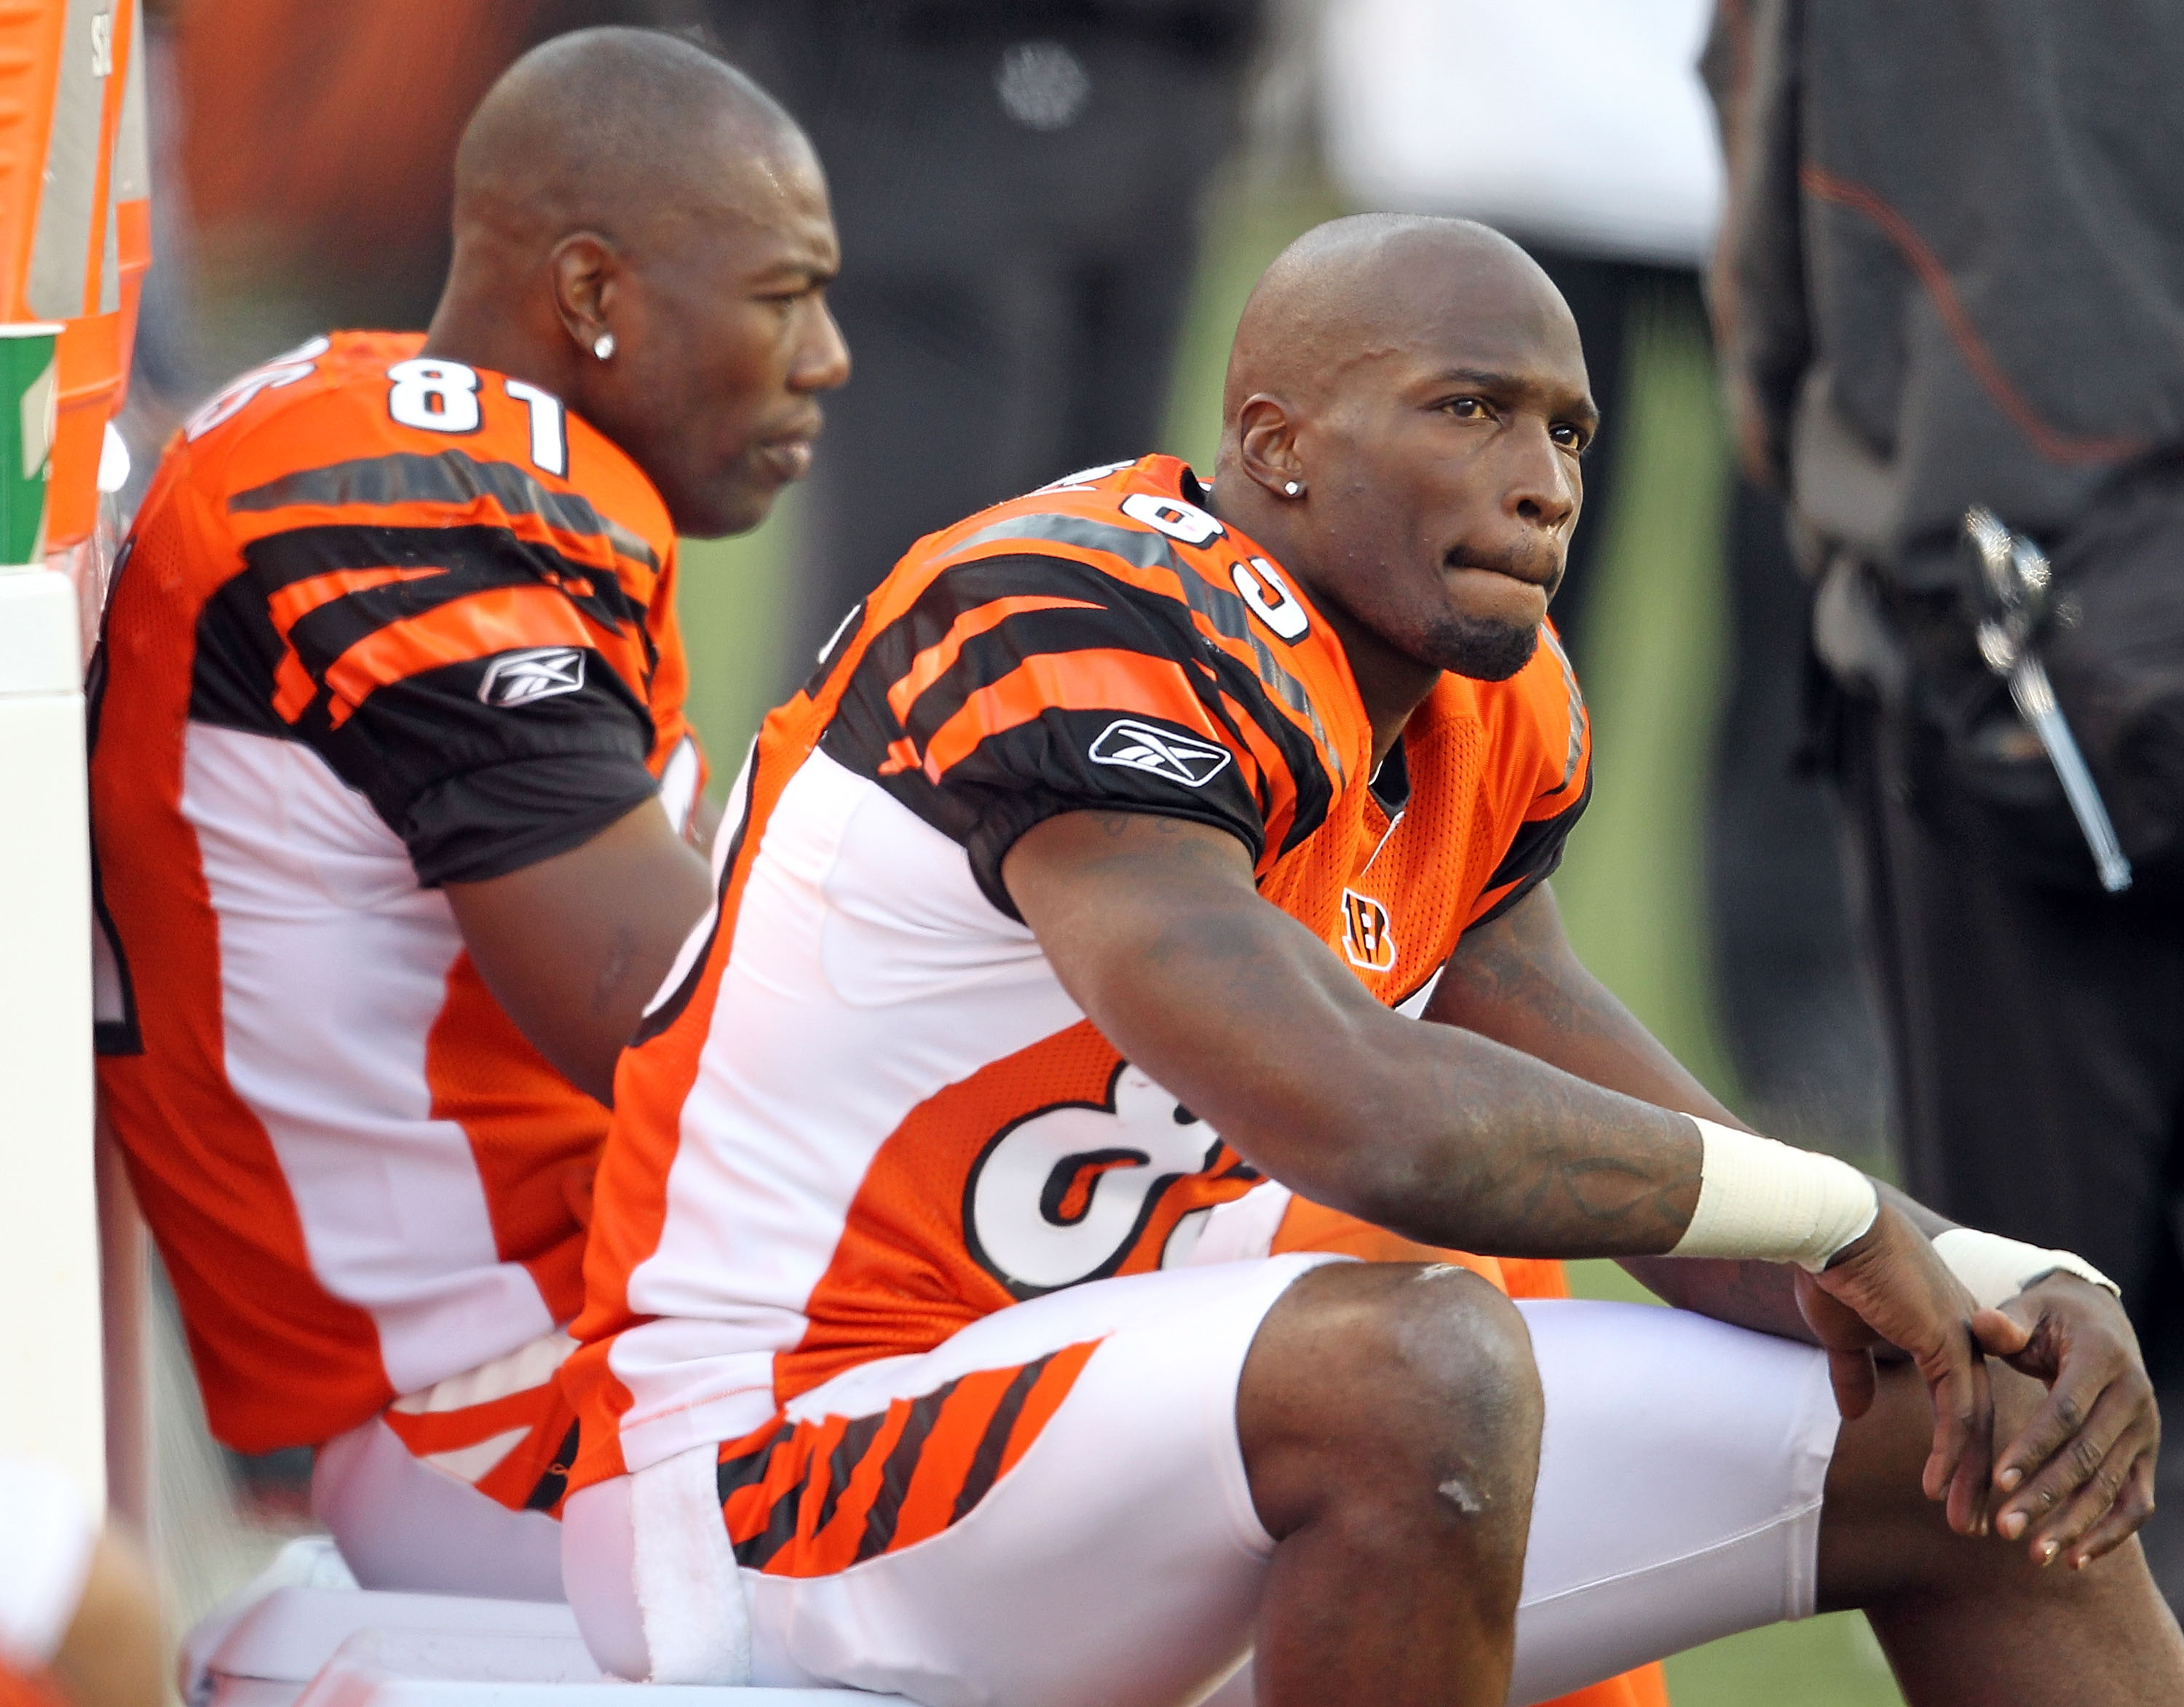 CINCINNATI - NOVEMBER 21:  Chad Ochocinco #85 and Terrell Owens #81 of the Cincinnati Bengals watch from the sideline during the final minutes of the Bengals 49-31 loss to the Buffalo Bills at Paul Brown Stadium on November 21, 2010 in Cincinnati, Ohio.